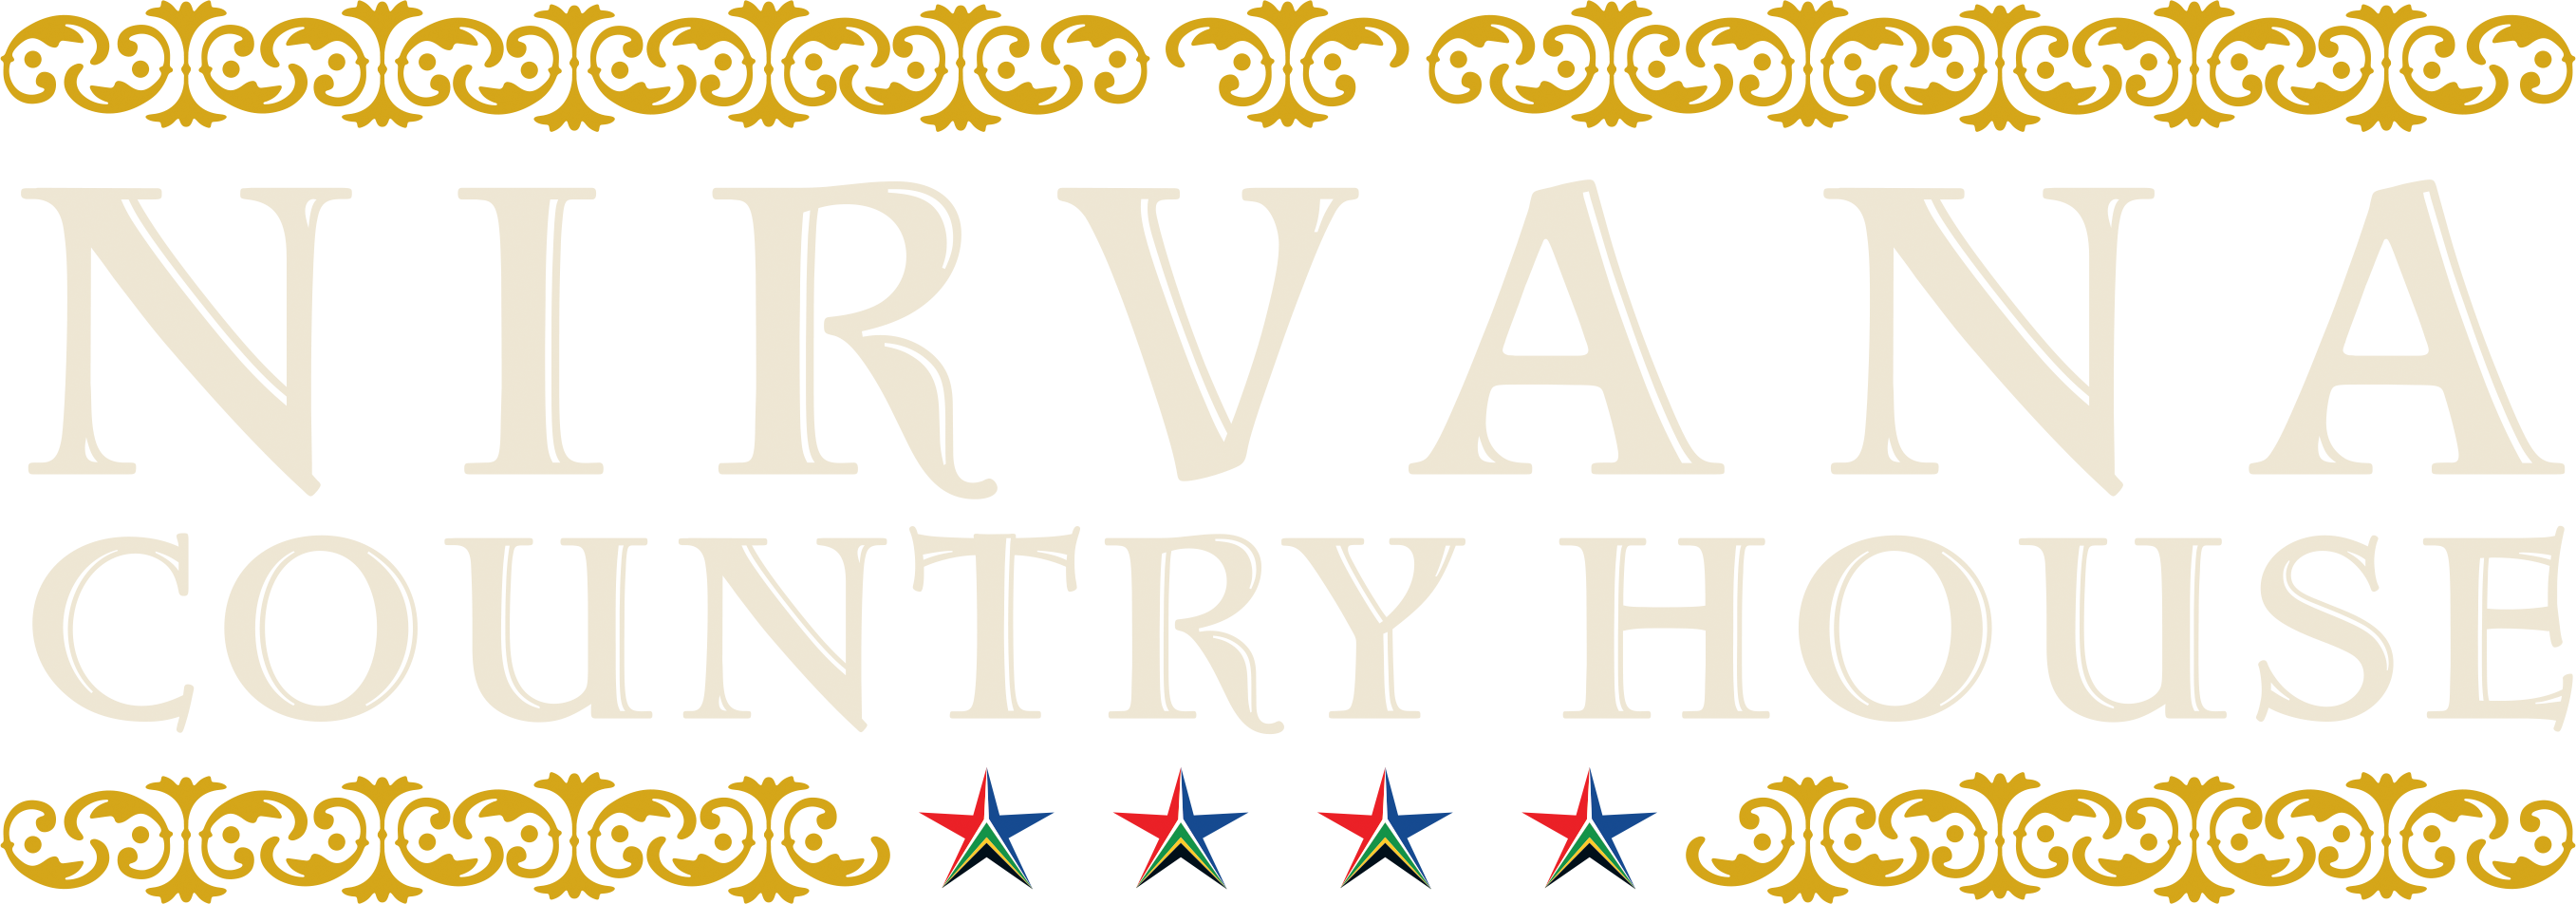 Nirvana Country House